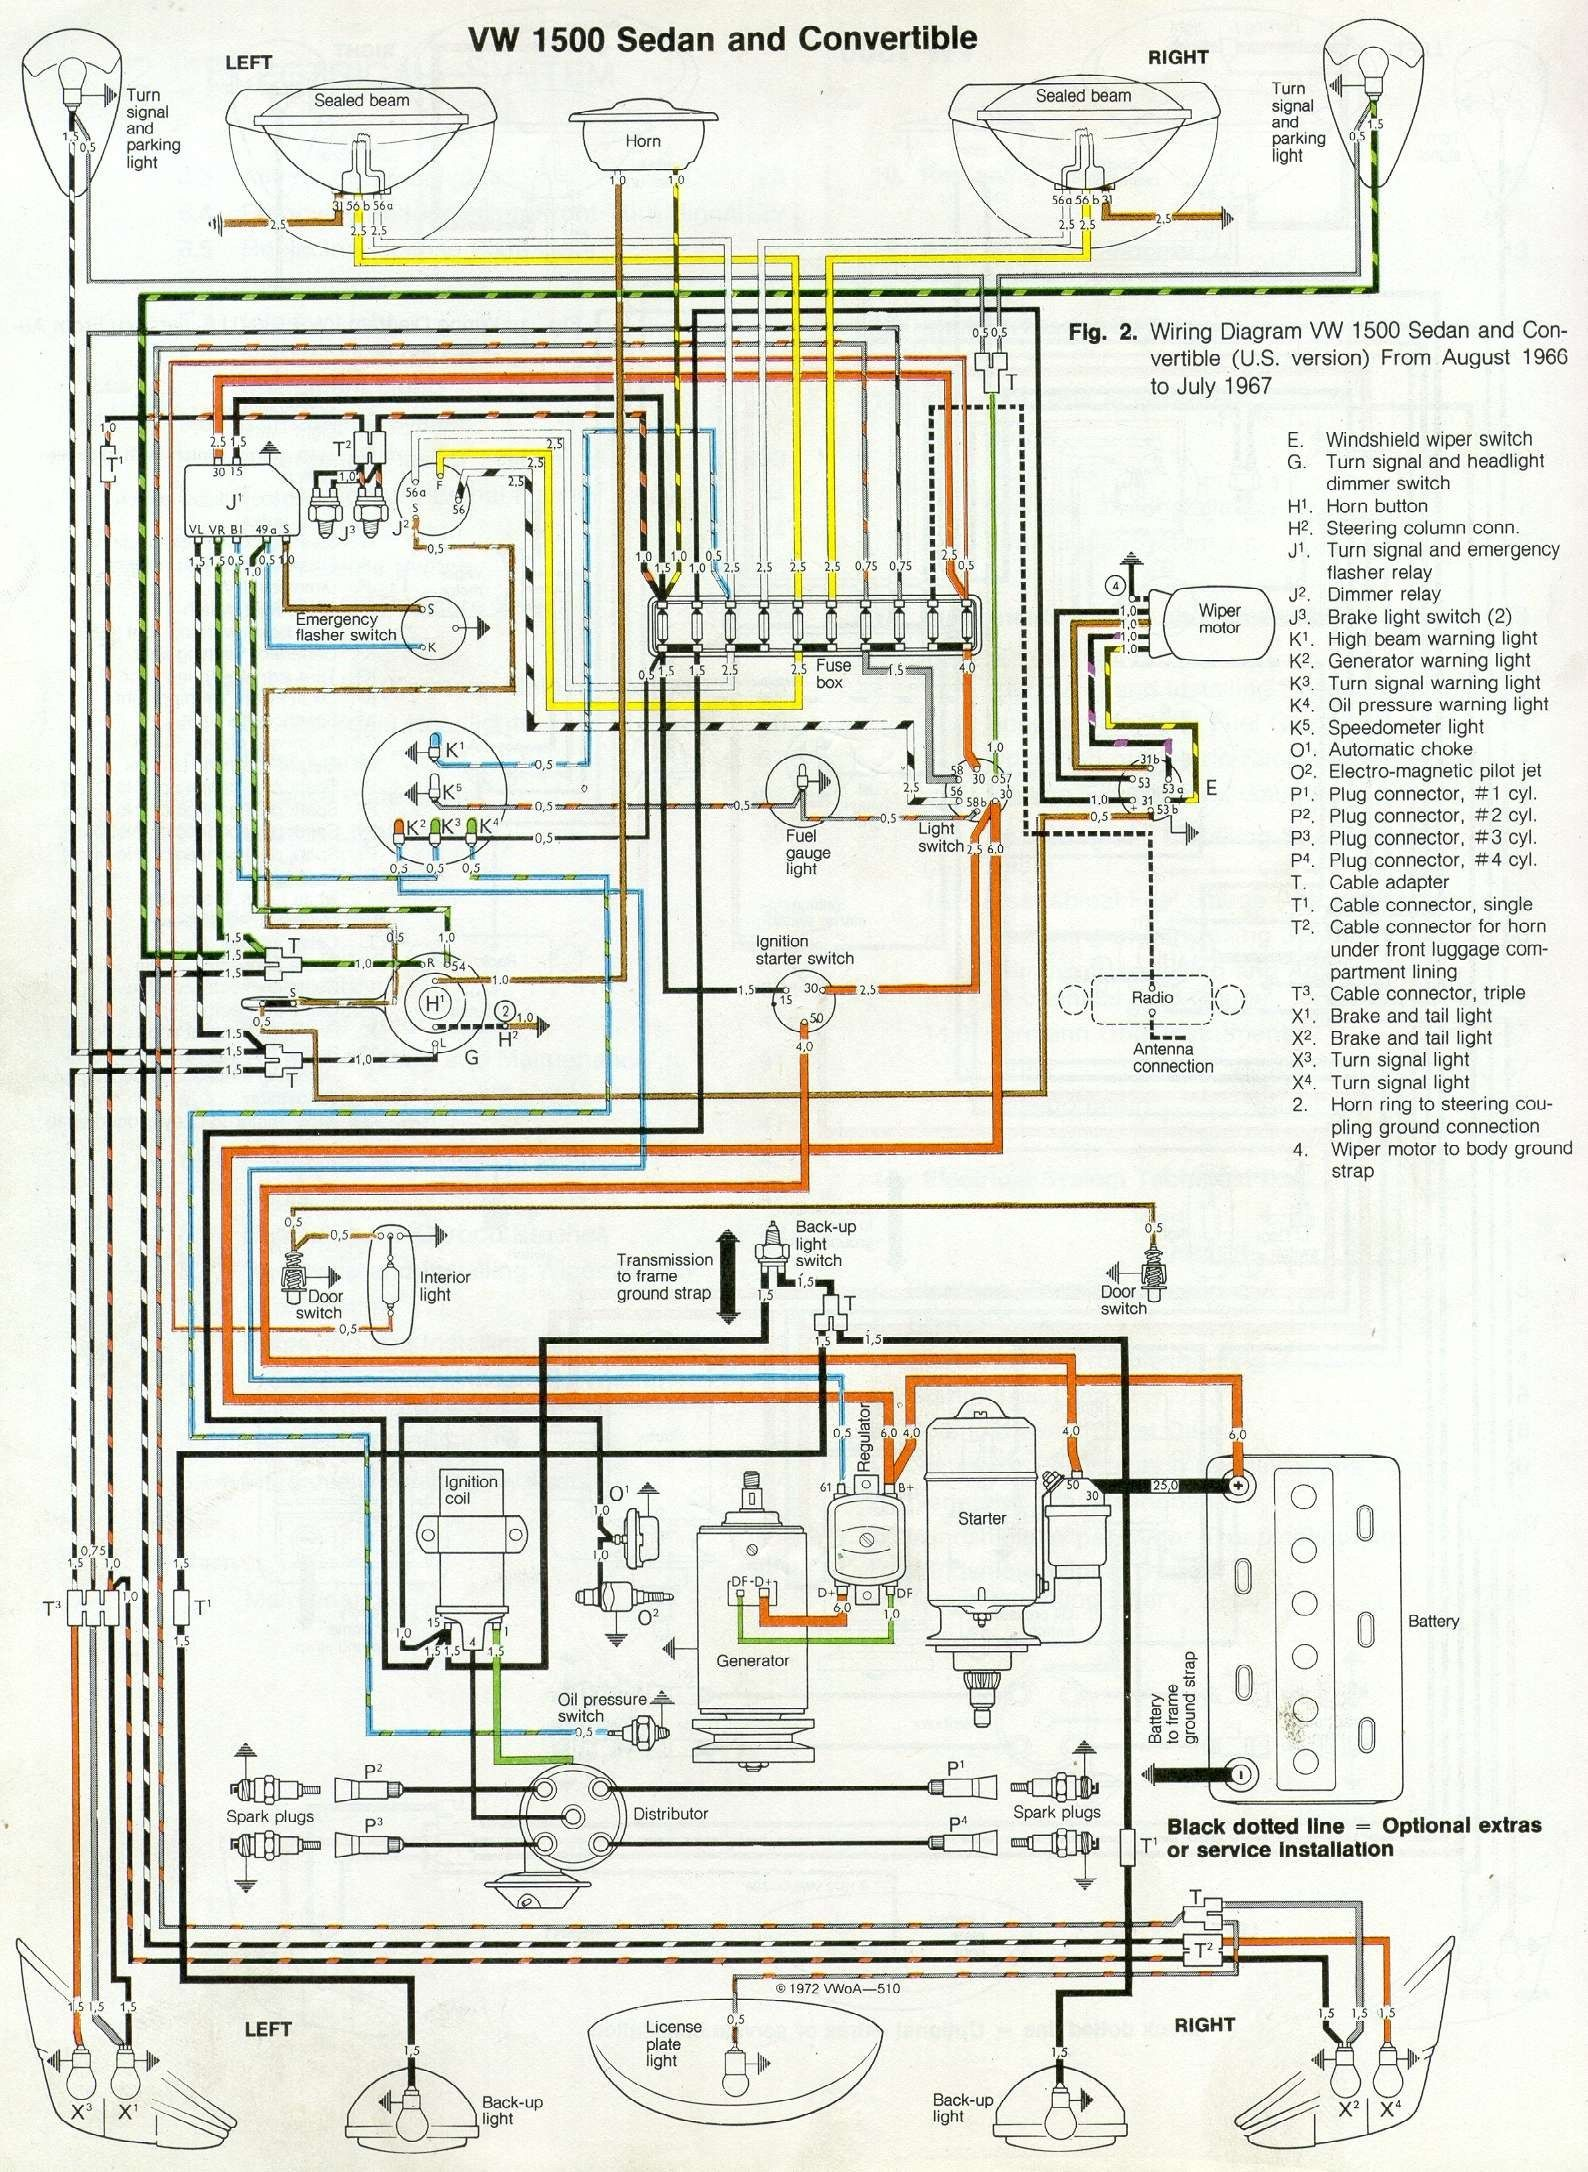 medium resolution of 67 vw beetle wiring diagram wiring diagram blog the 1966 volkswagen beetle headlight switch wiring this diagram